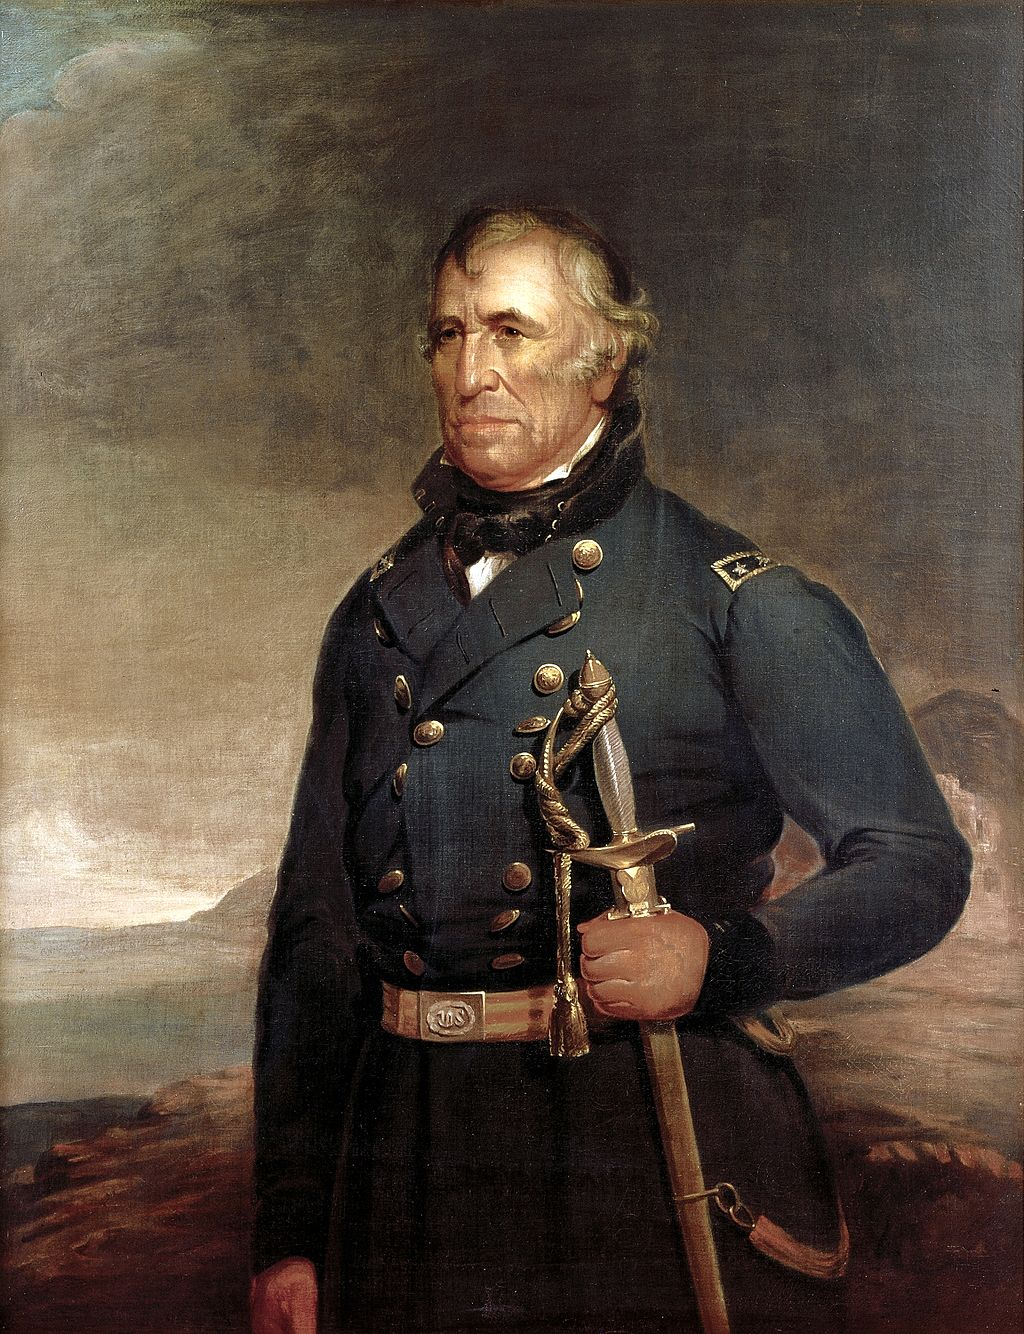 The official White House portrait of President Zachary Taylor. Taylor played a key role in the Compromise of 1850.